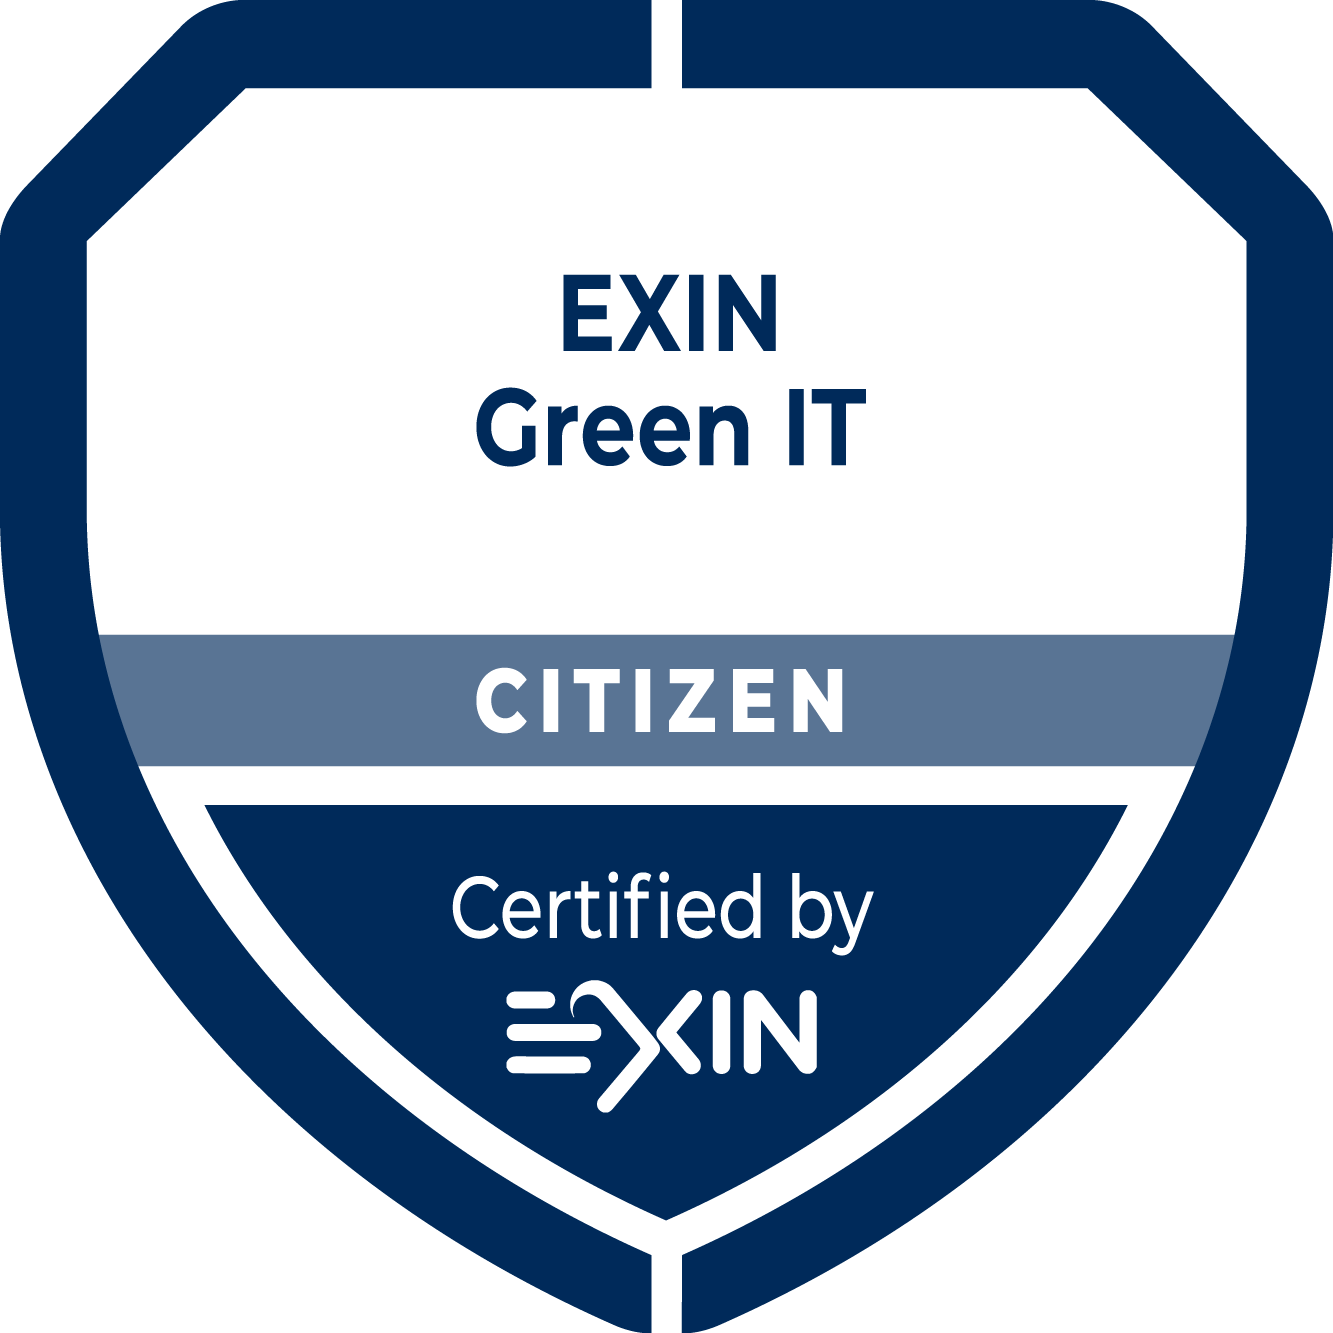 EXIN Green IT Citizen